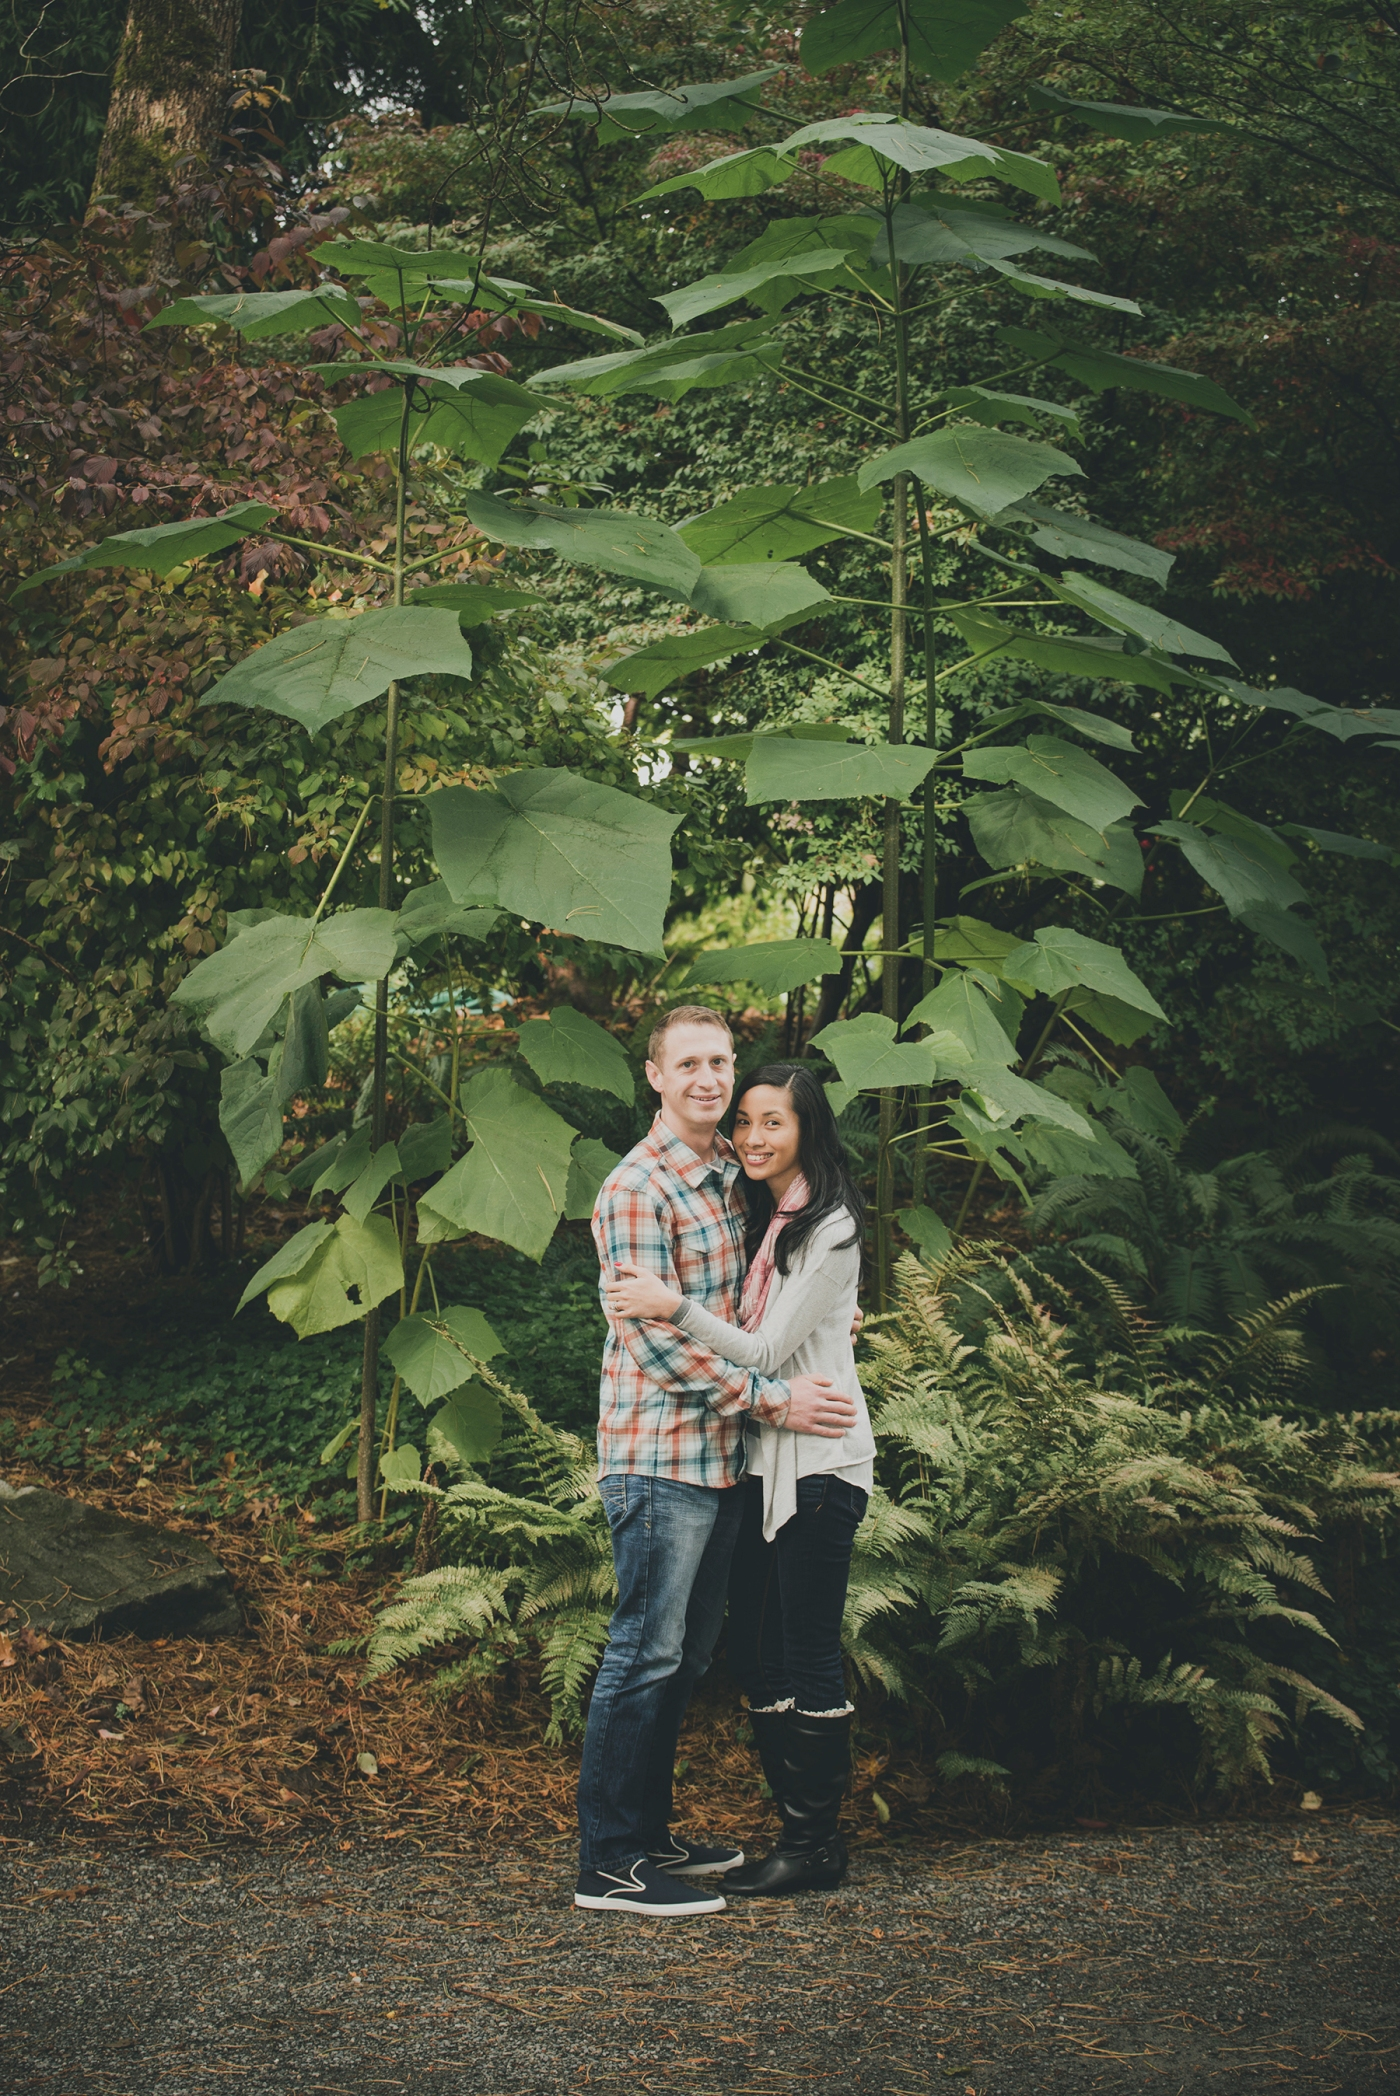 jane-speleers-photography-ju-bri-holiday-october-bellevue-botanical-garden-engagement-2016_dsc_5666